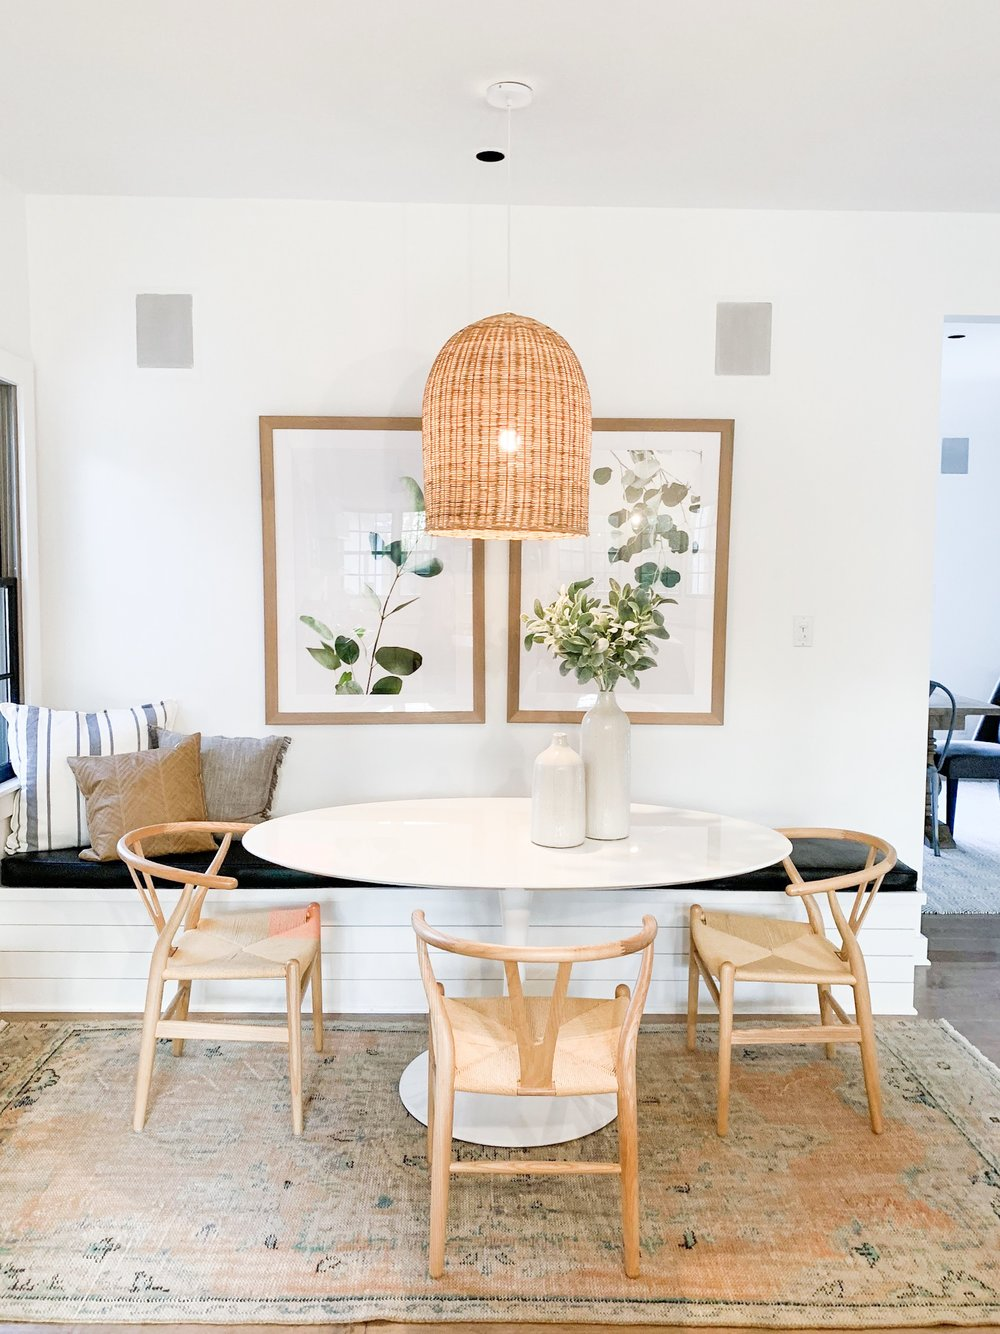 pendant light over white oval table and wishbone chairs